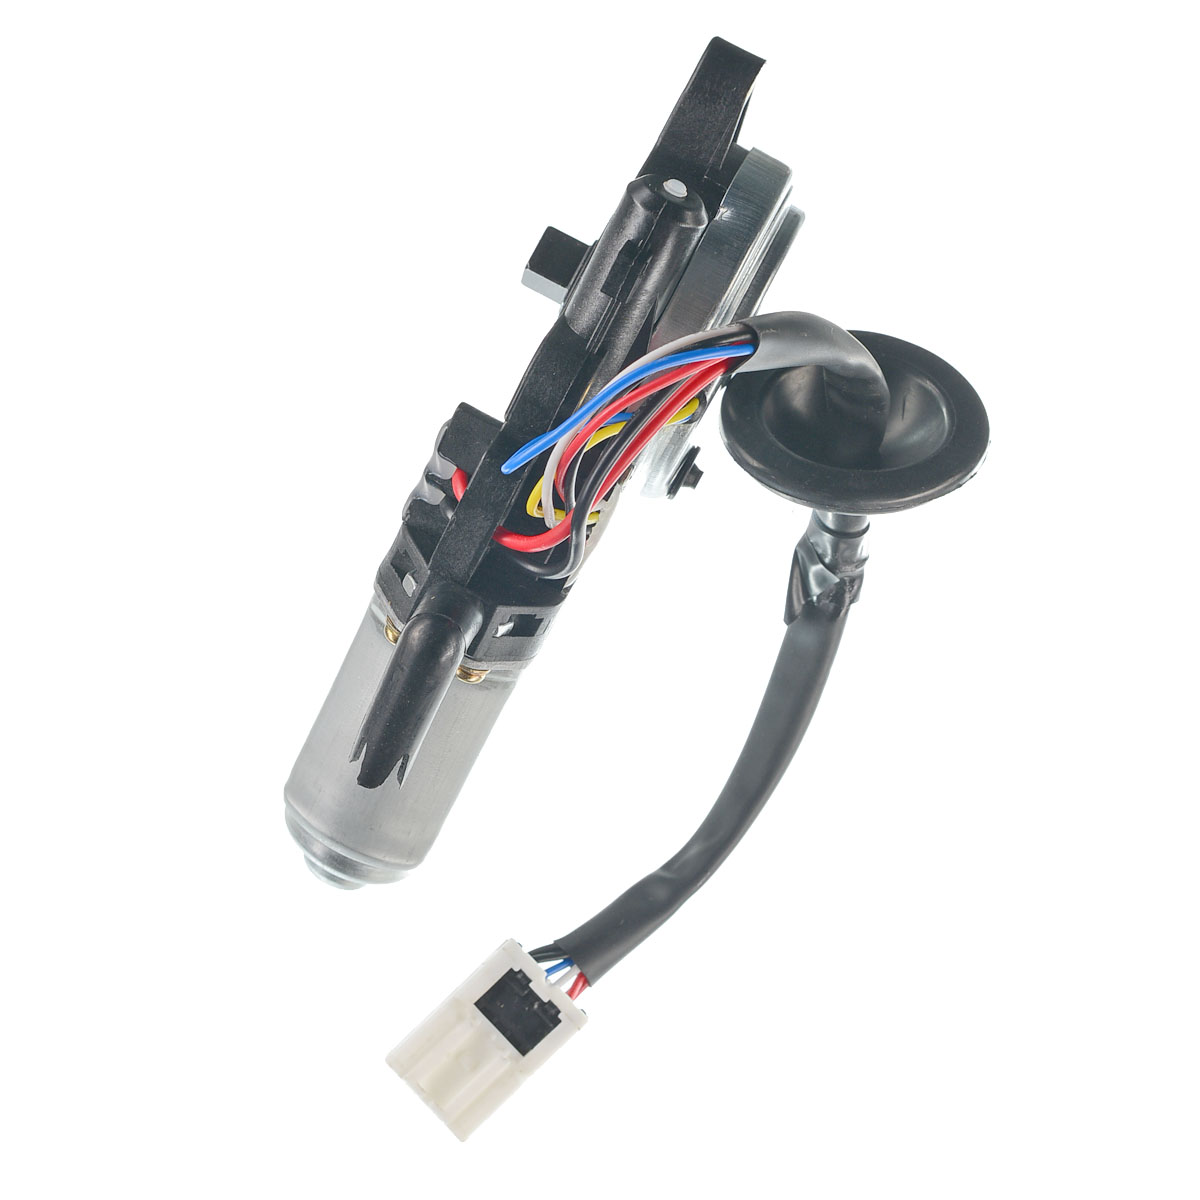 Window Lift Motor For Nissan Altima 2002 2003 2004 2005 2006 With Power Wiring Anti Clip Front Left Driver In Lever Winding Handles From Automobiles